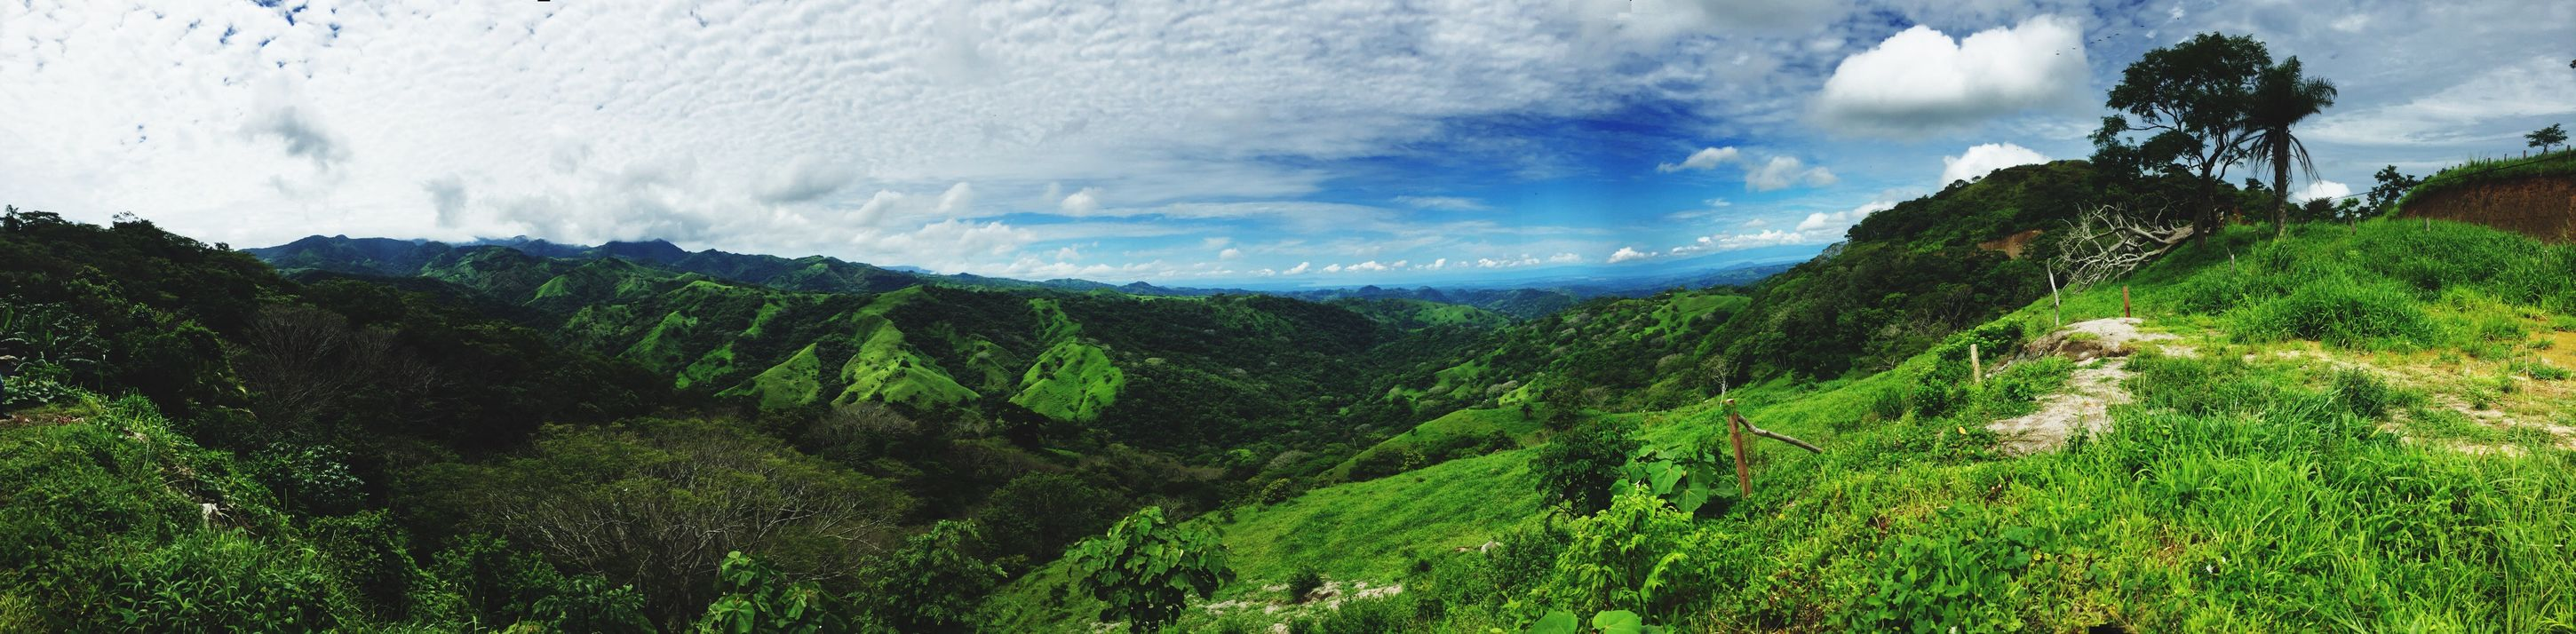 My Favorite Place Costa Rica Home Country 👌🏽😍 First Eyeem Photo